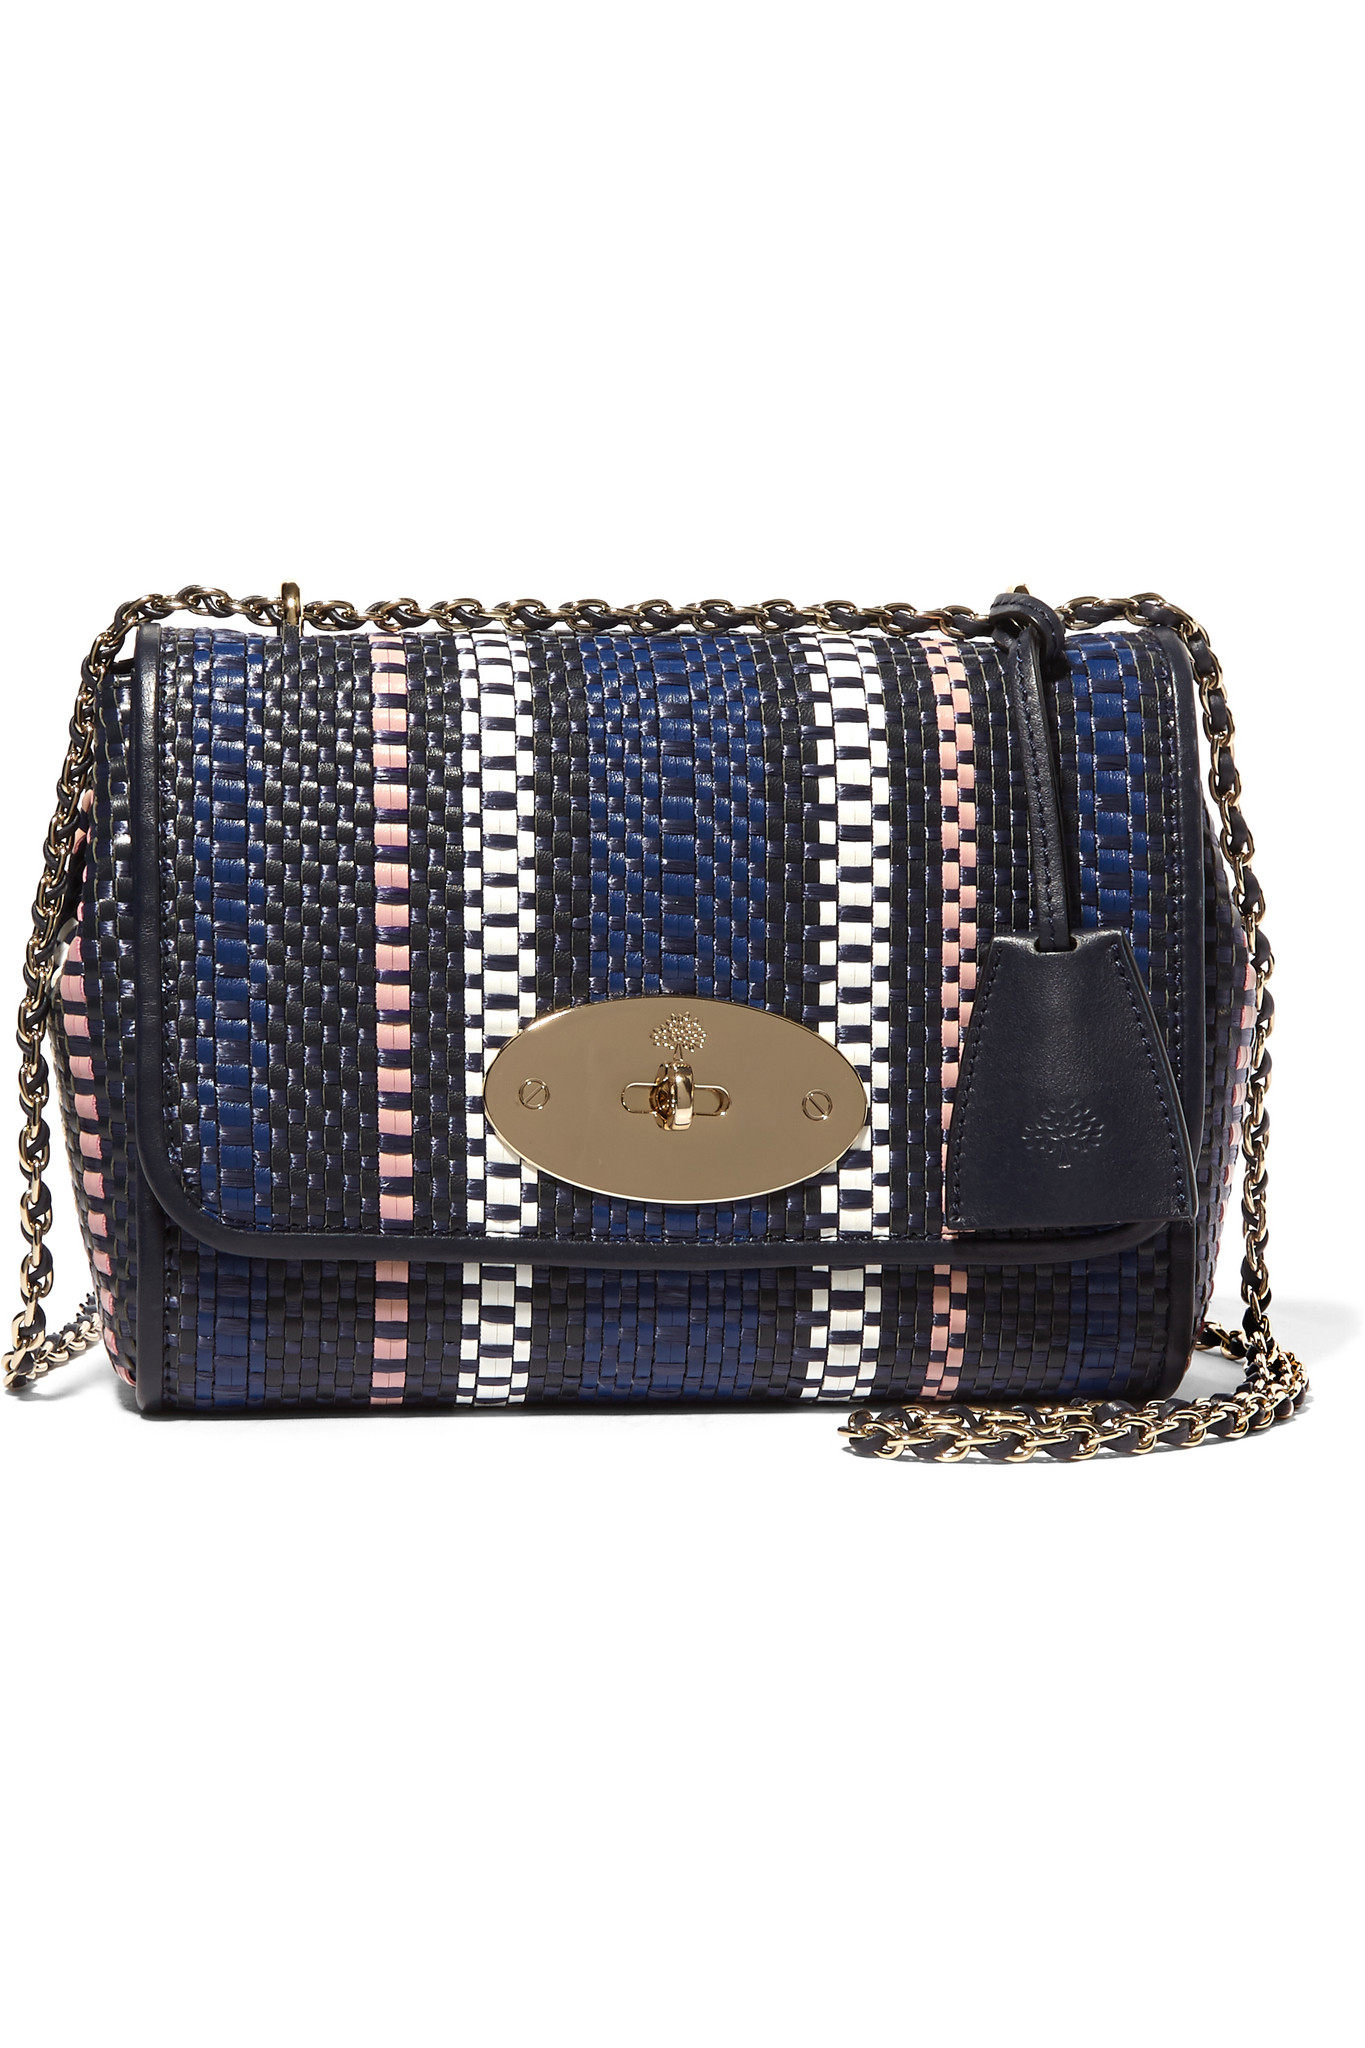 be414b8b98a7 Mulberry Lily Small Woven Raffia And Leather Shoulder Bag in Blue - Lyst